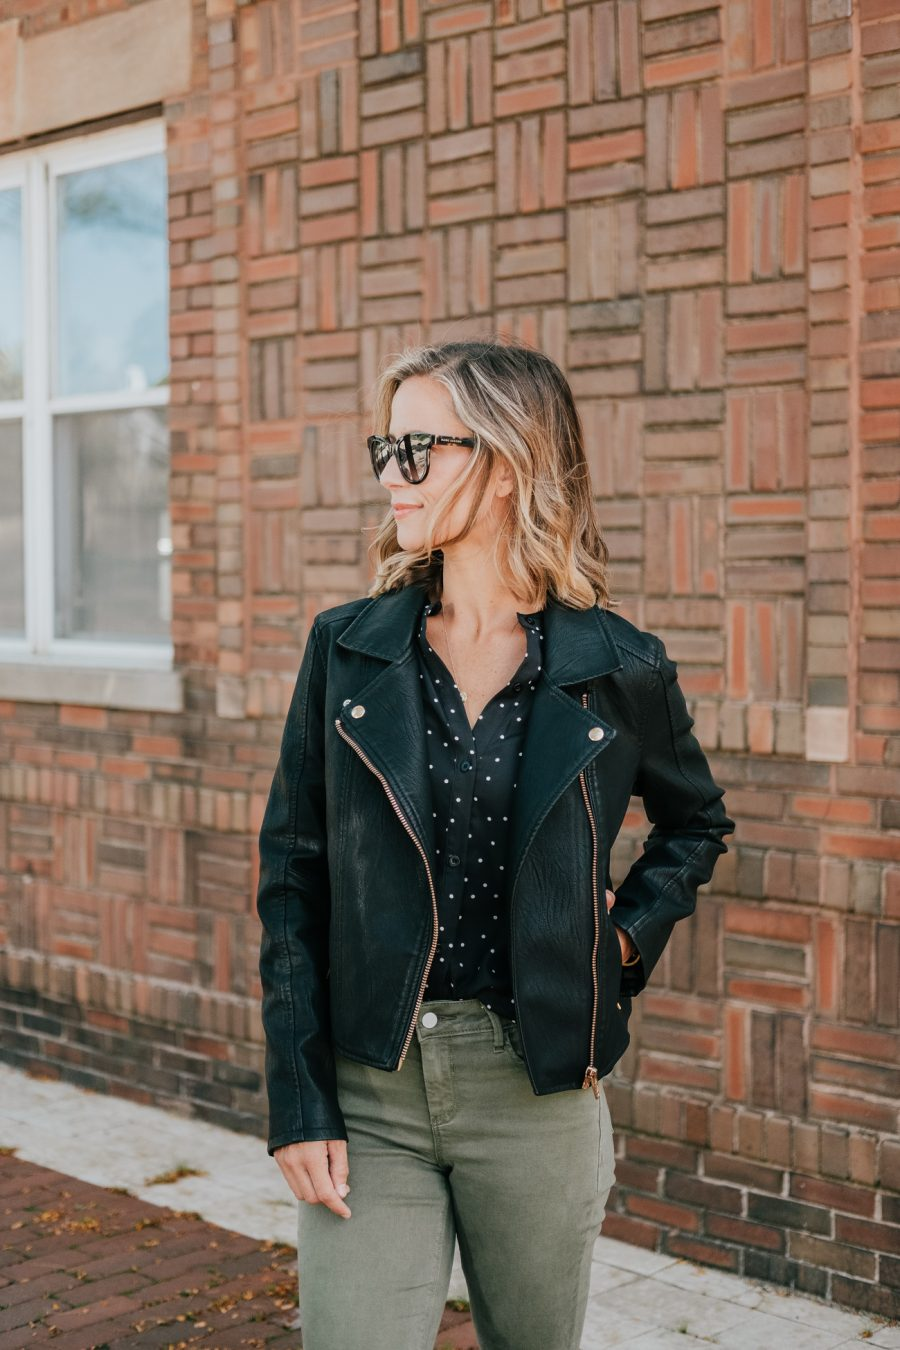 Budget friendly style: olive pants, polka dot blouse, moto jacket, booties, and sunglasses